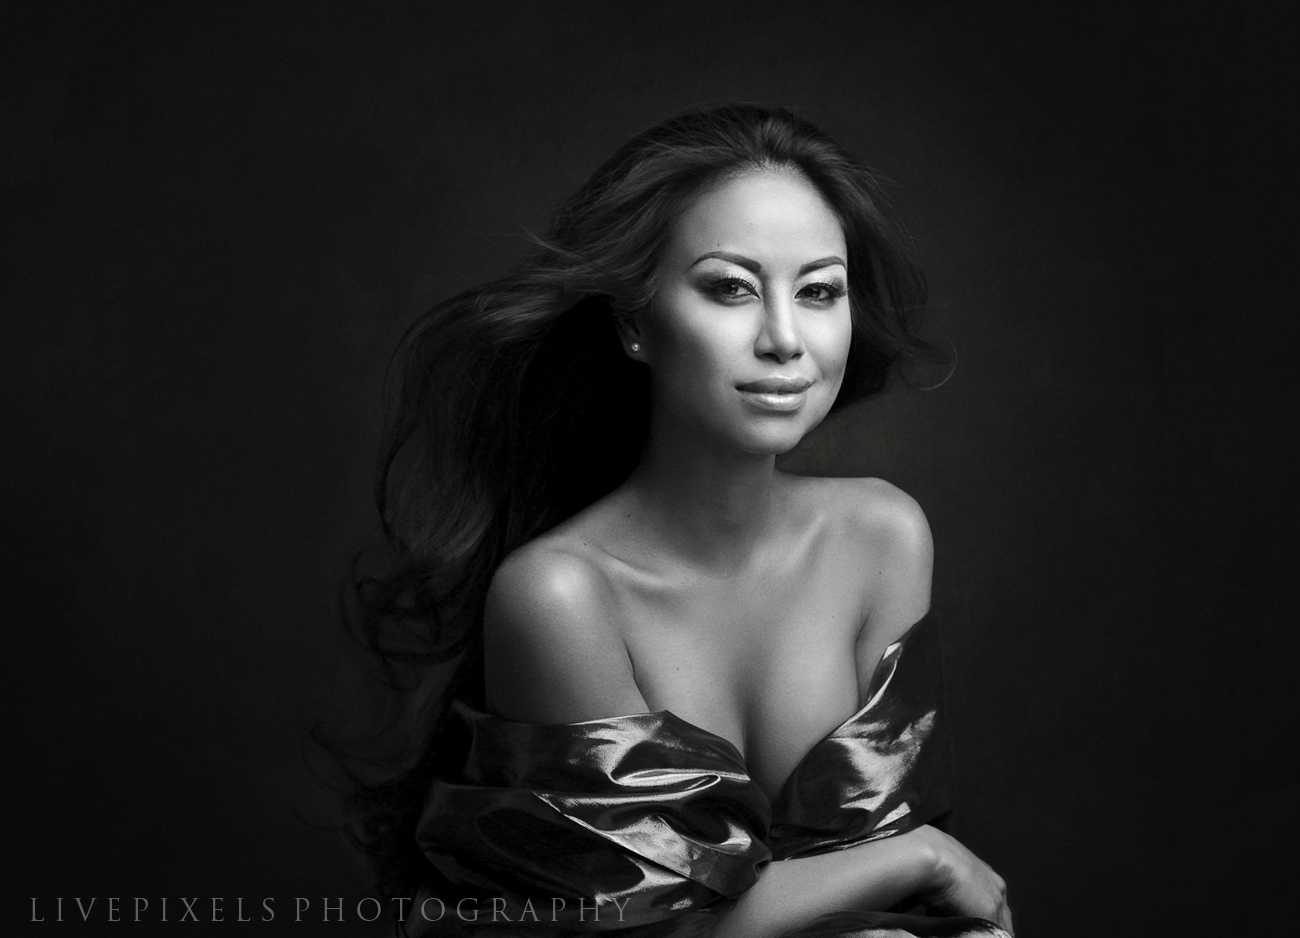 Beauty portrait by Toronto photographer LivePixels Photography.jpg